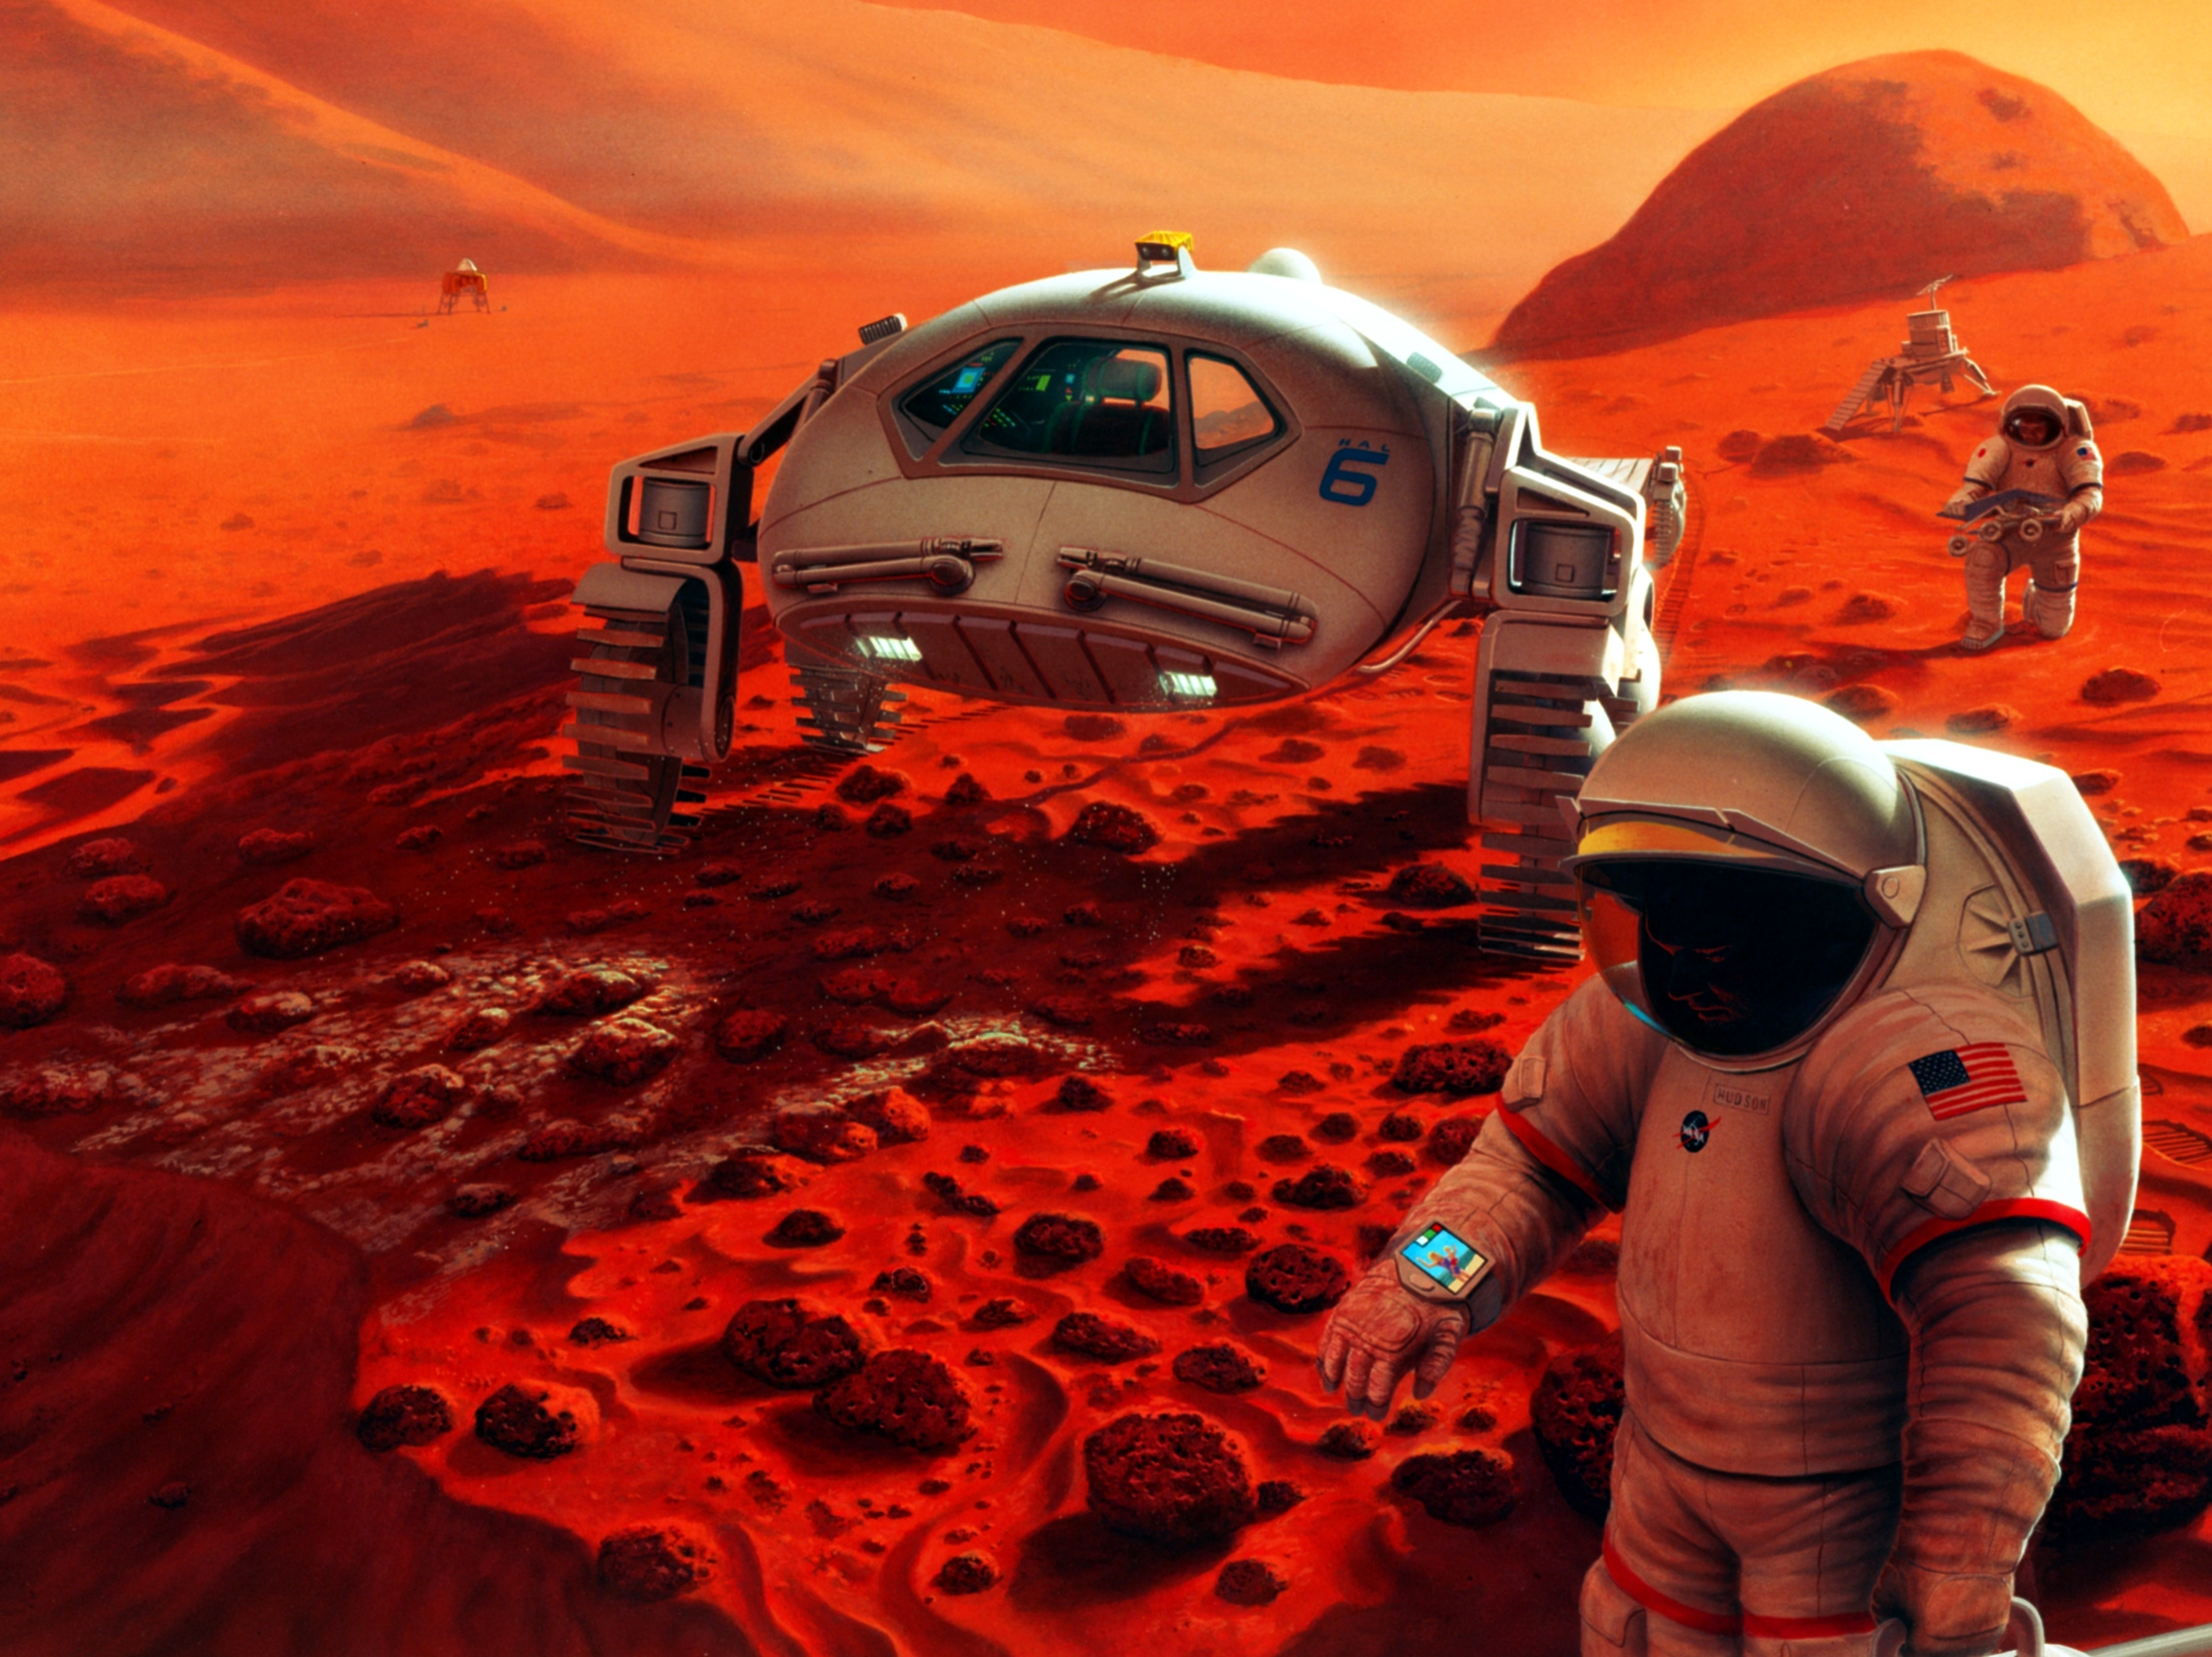 'There's No Handbook For How to Land on Mars'